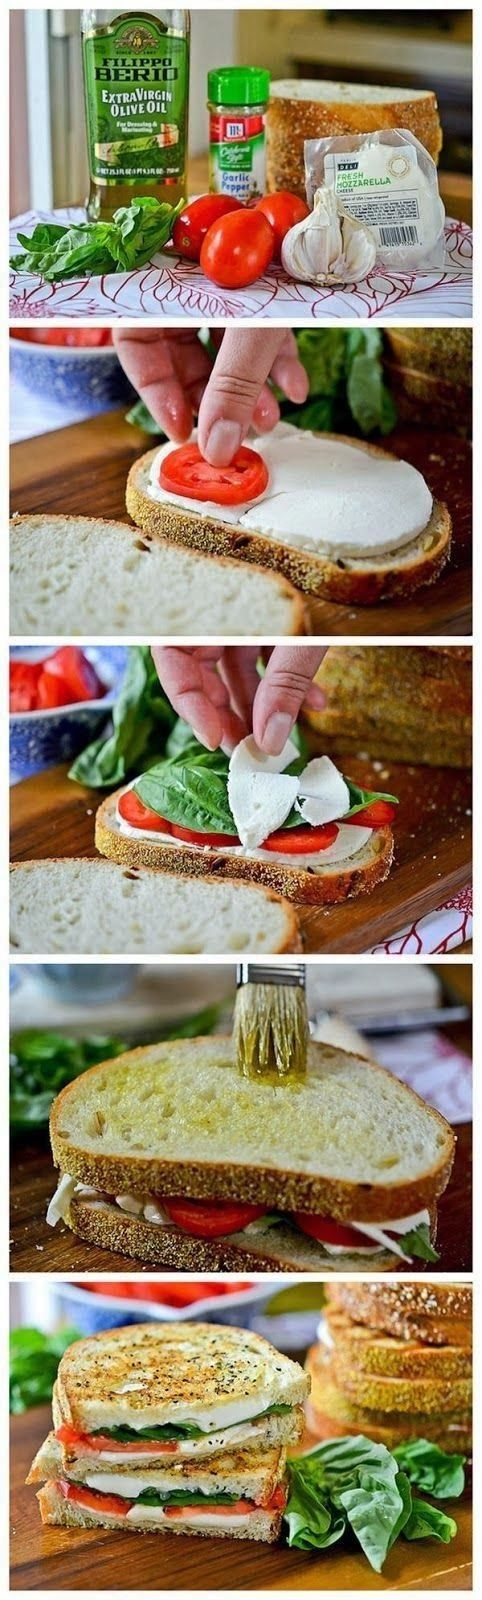 Italian Grilled Margherita Sandwiches - Best Recipes <- this looks AMAZING